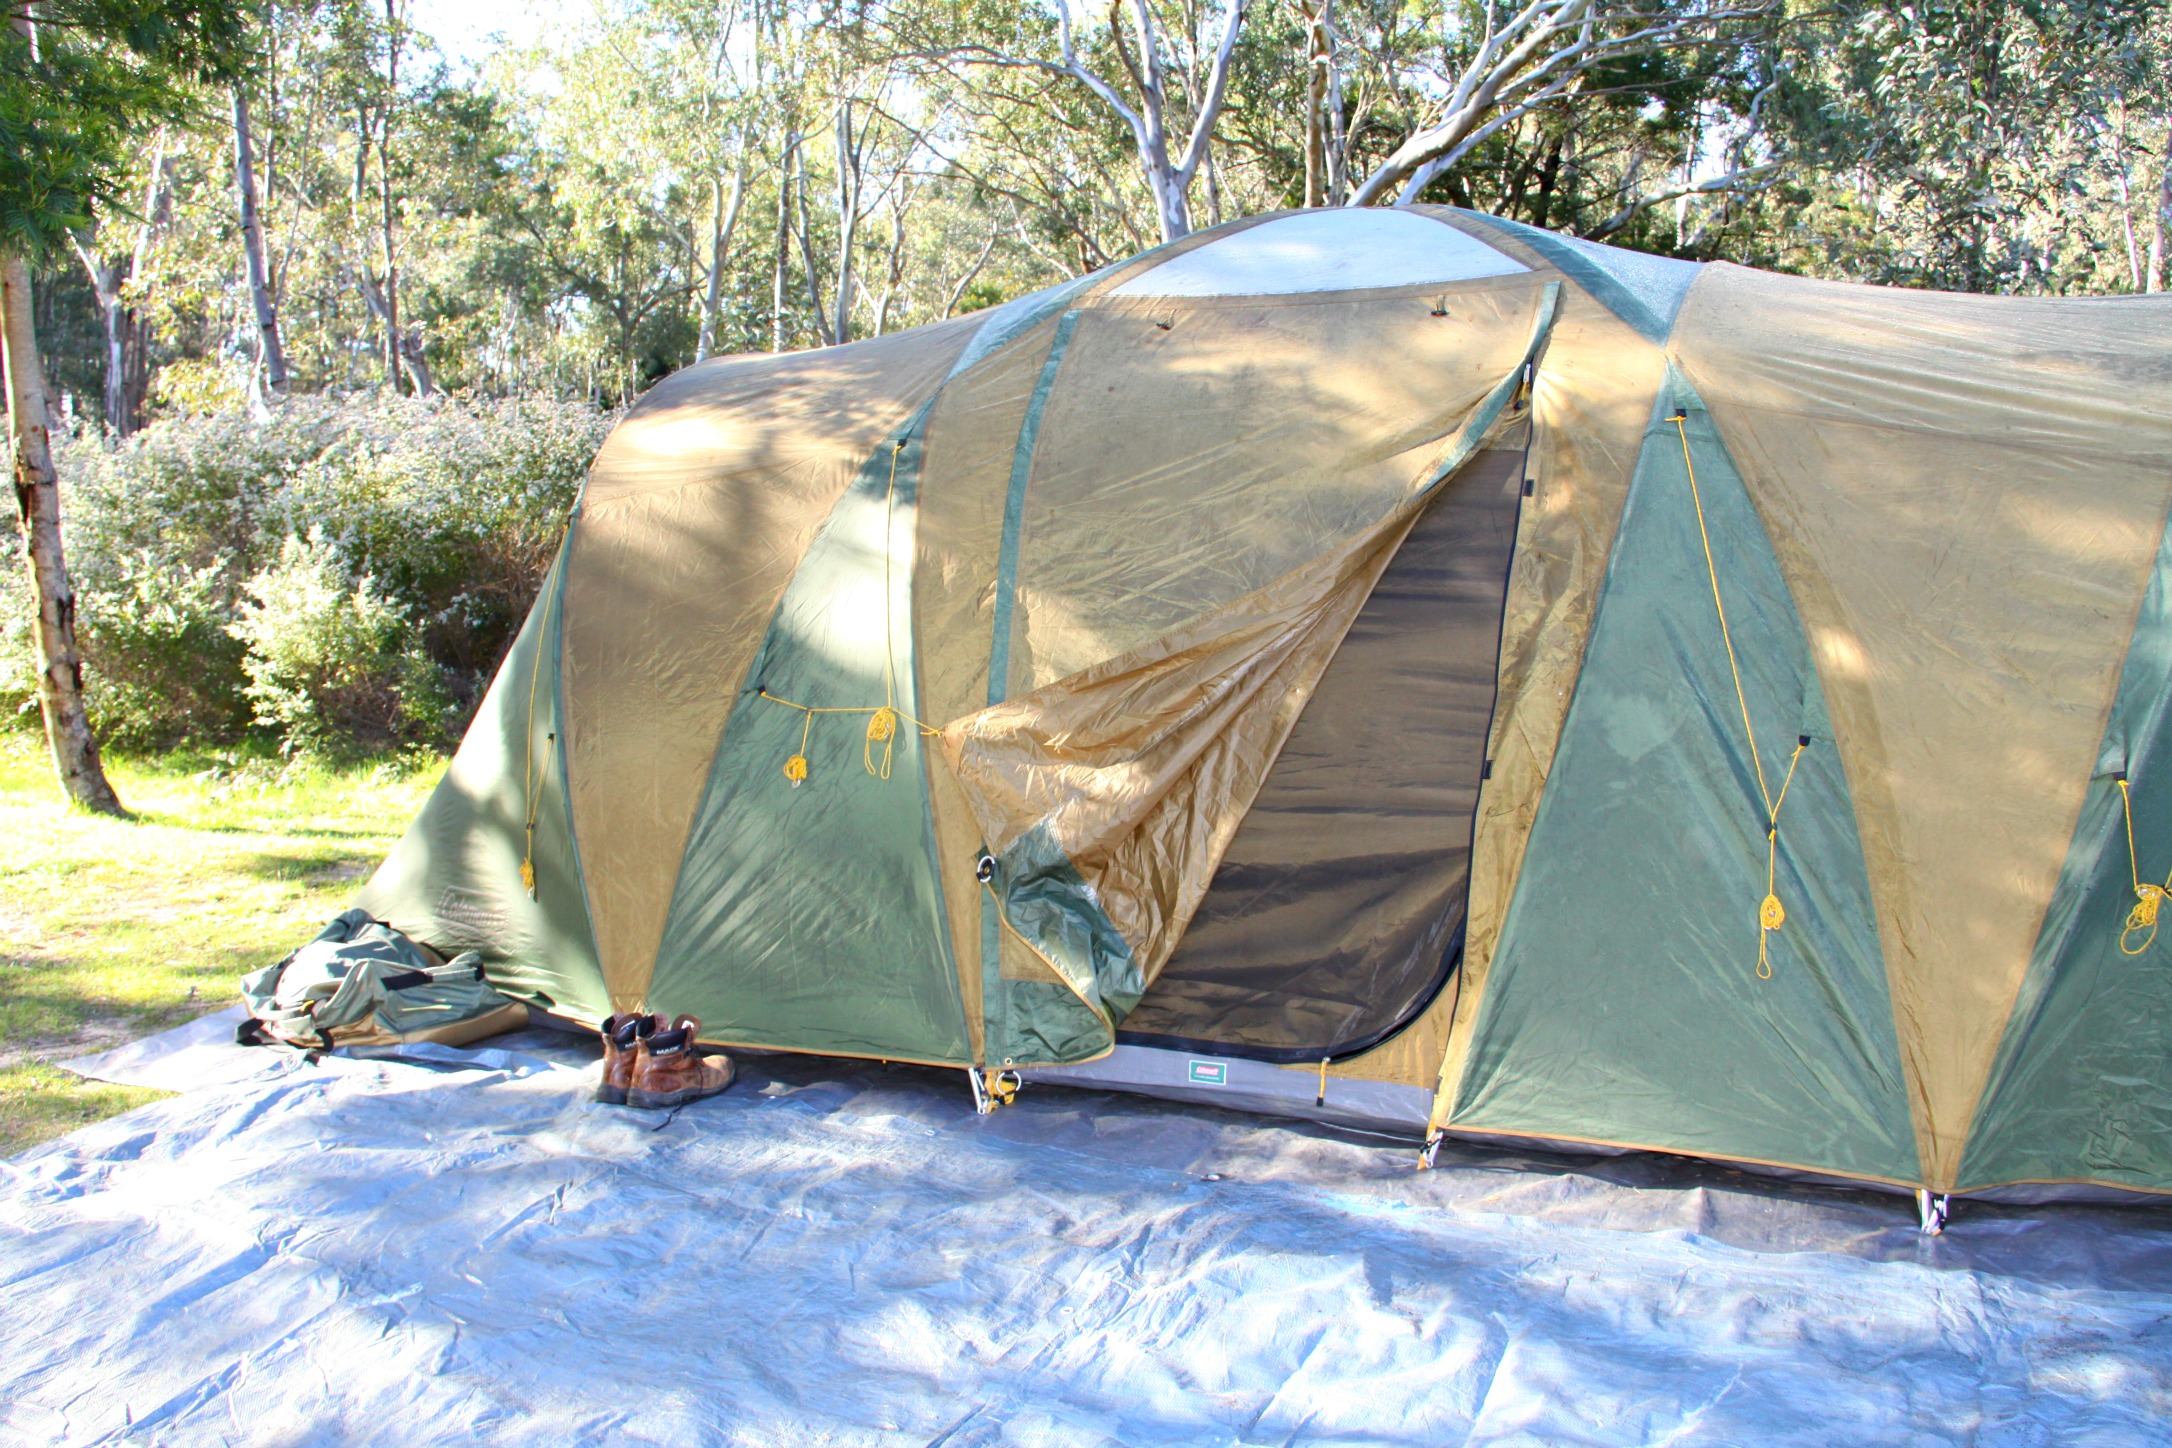 The large tent is filled with air which will be cold and so choose a small tent with the minimum amount of space you need. Cosy means warm in winter. & Top tips for camping in a tent in the Aussie Winter with Kids ...